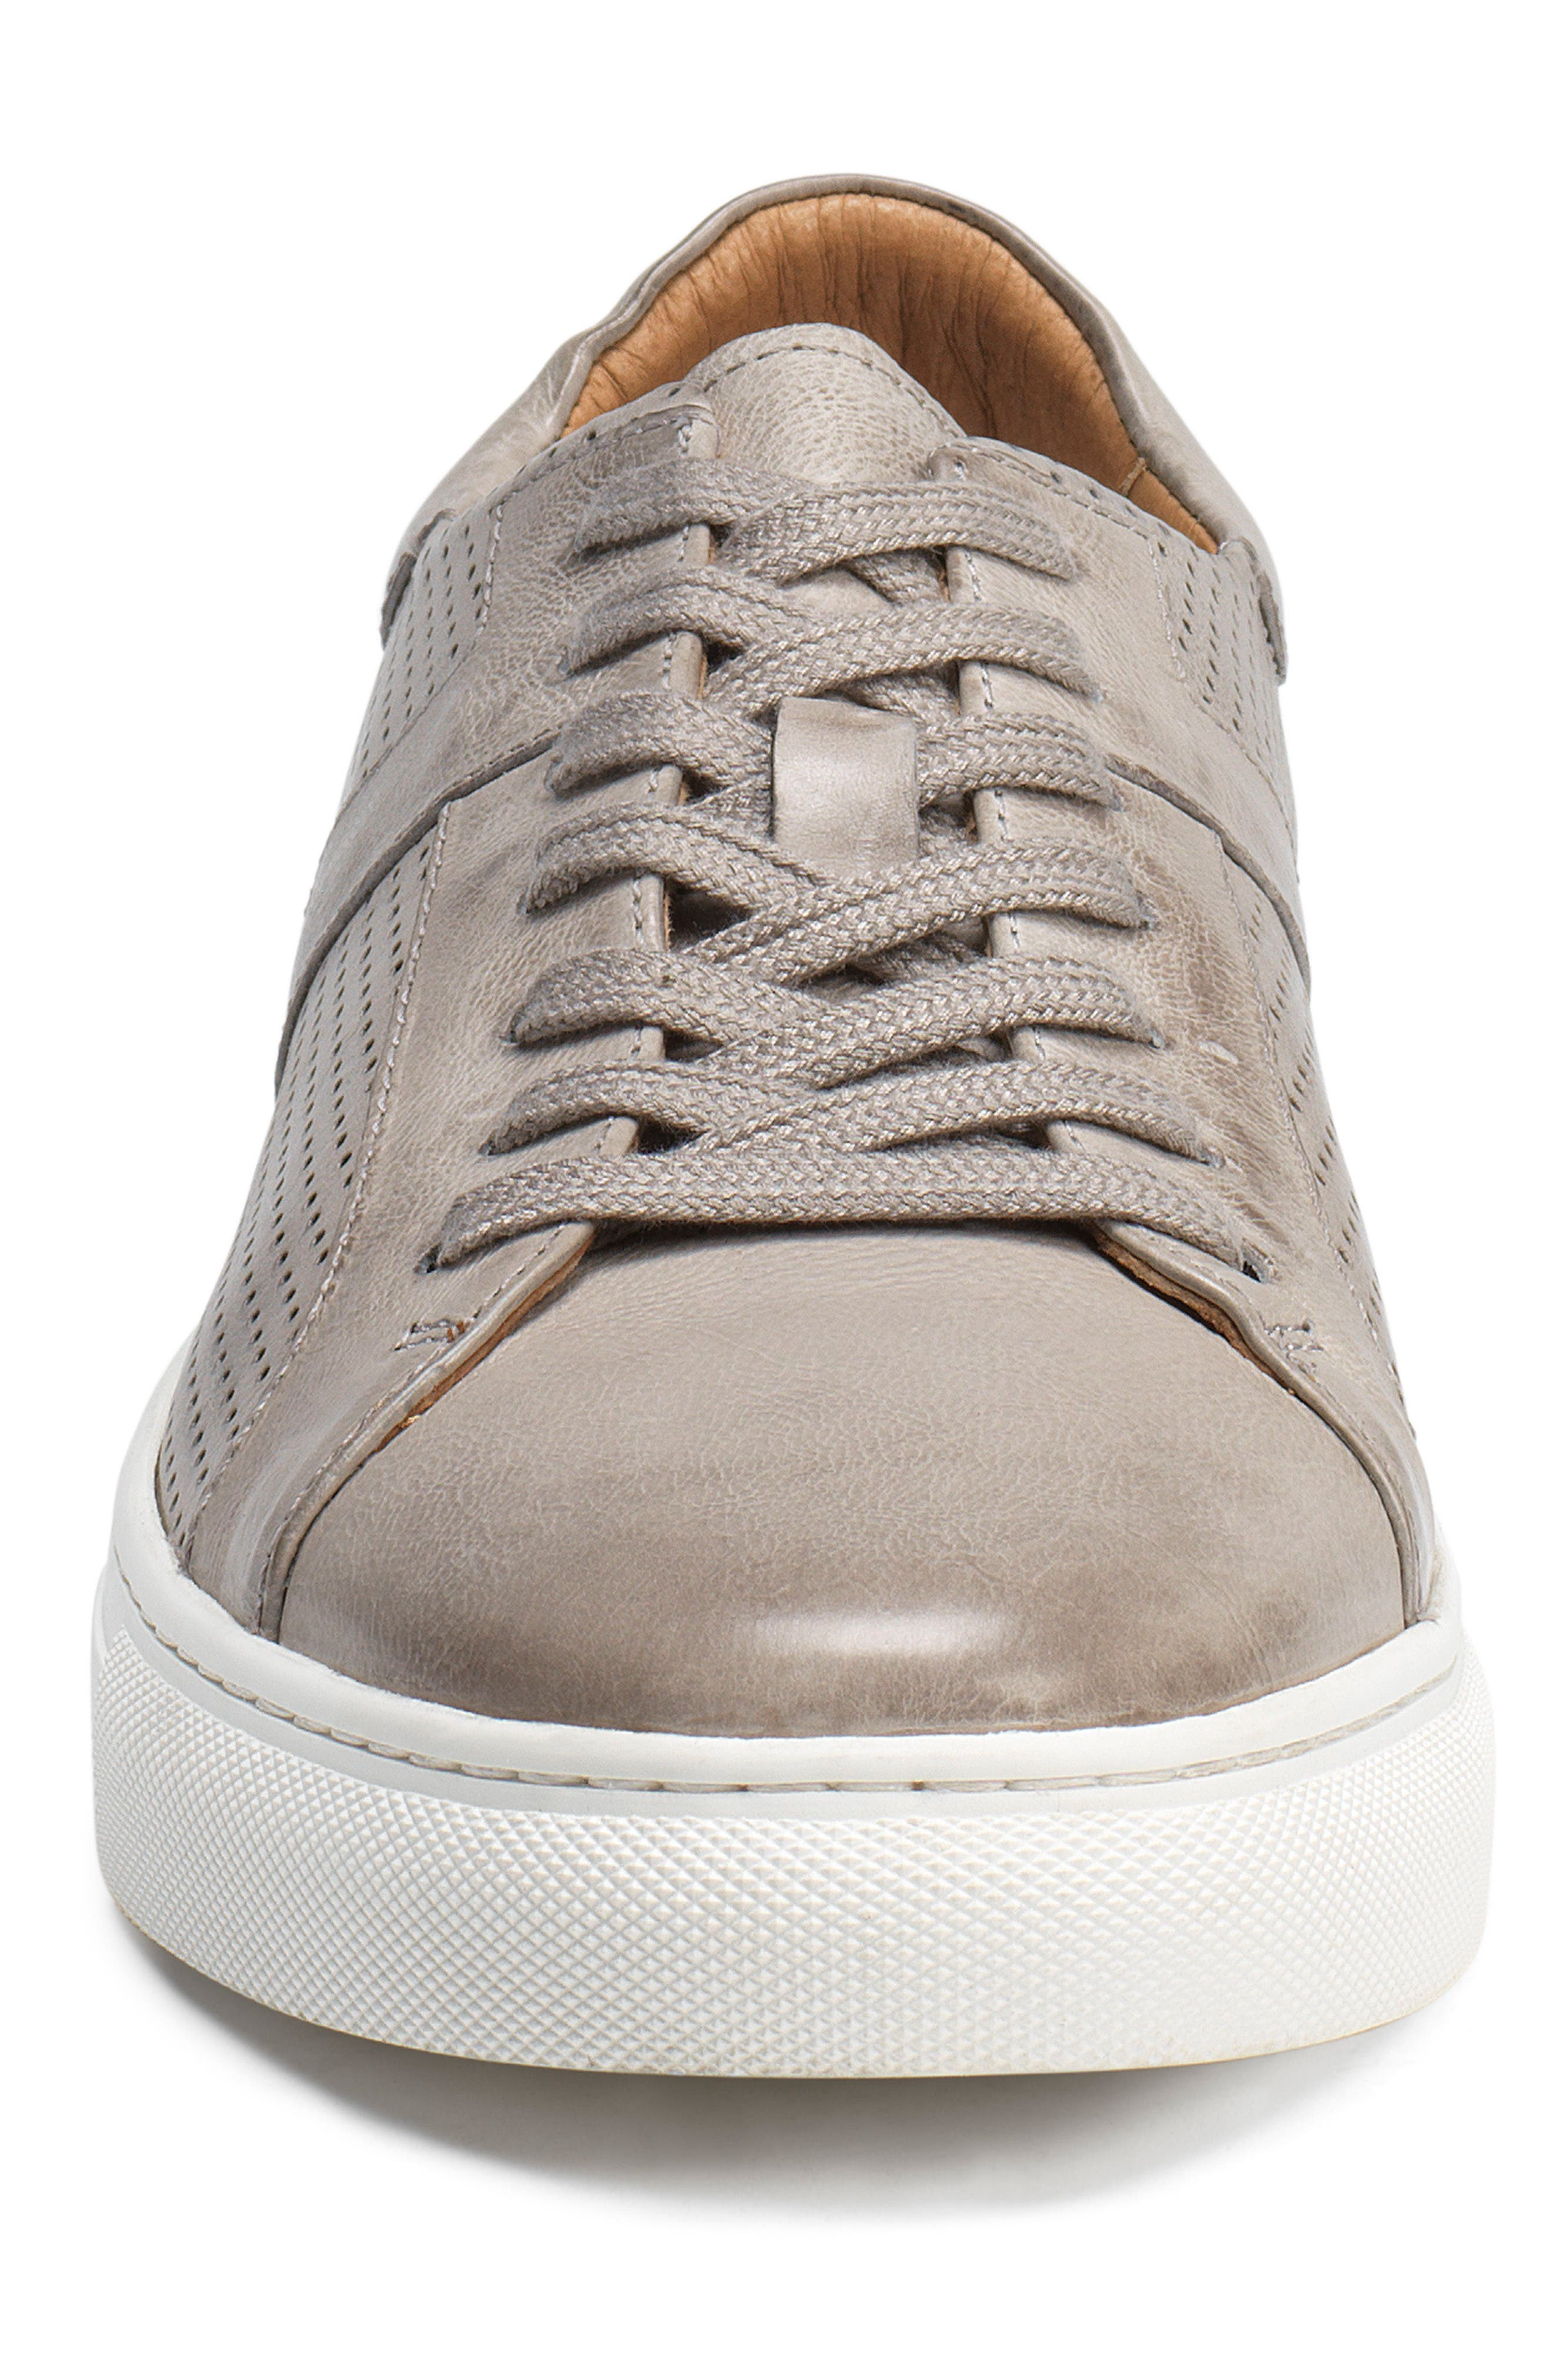 Aaron Sneaker,                             Alternate thumbnail 4, color,                             Light Grey Leather